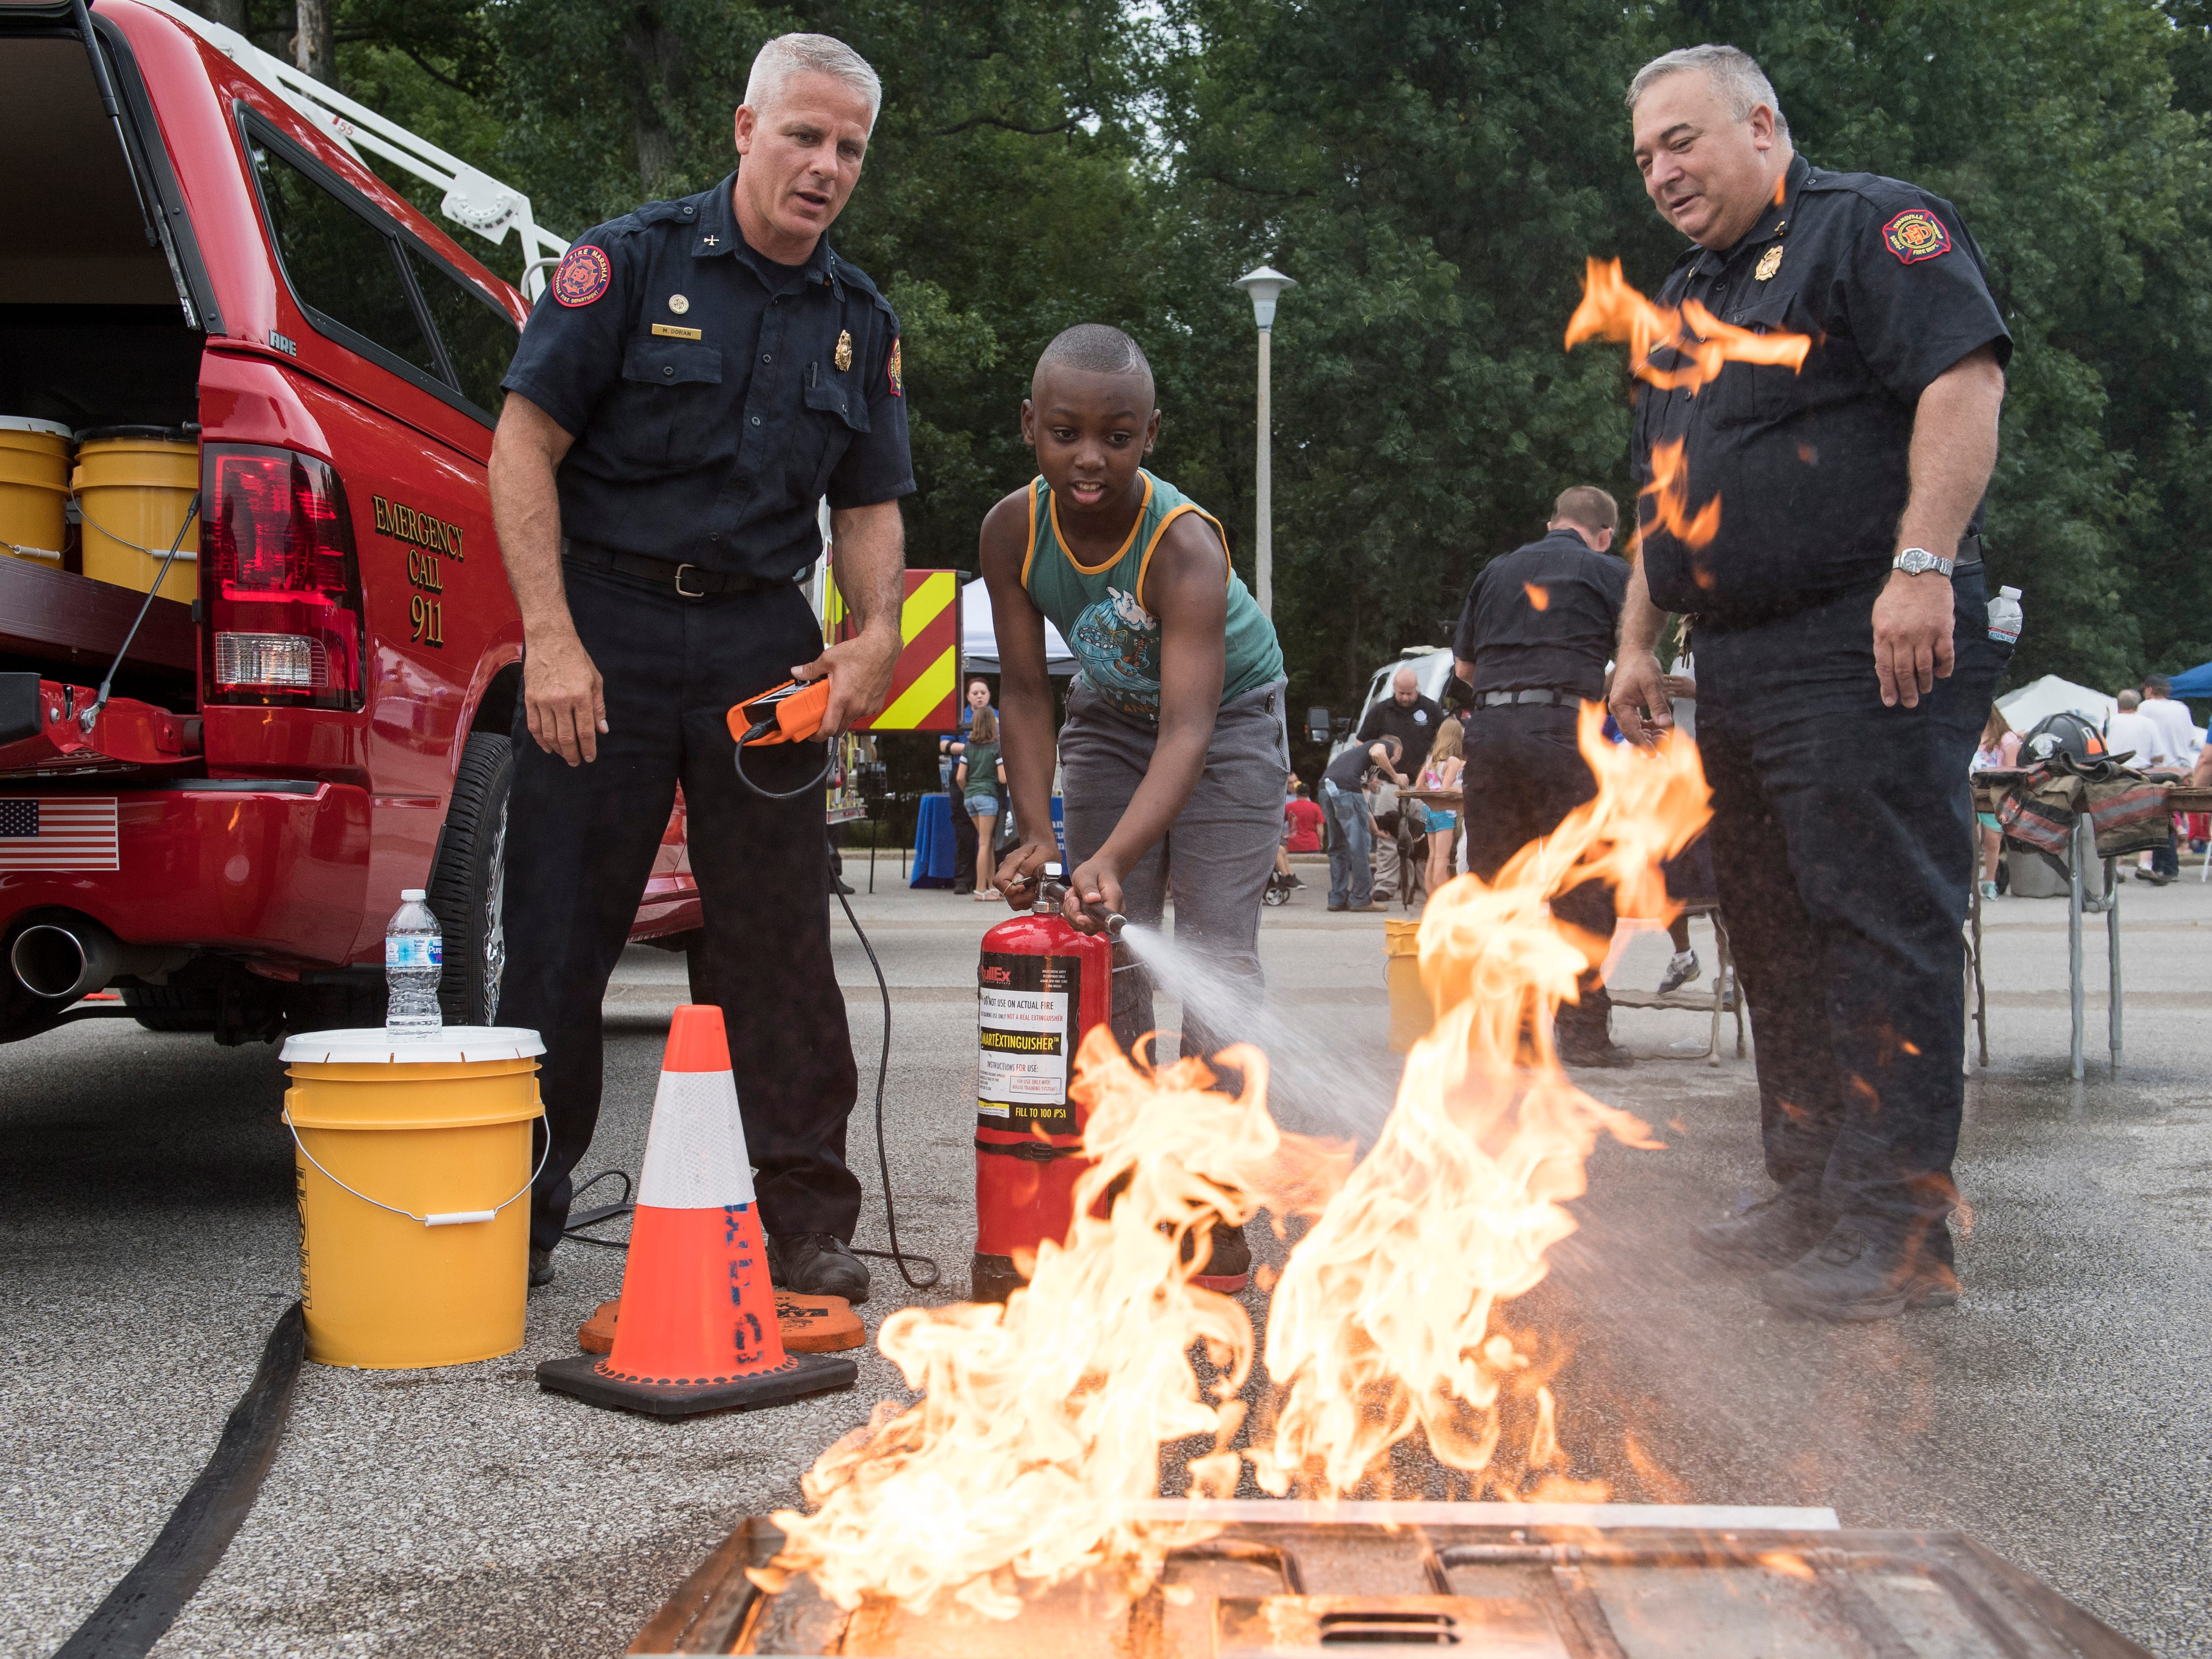 Andre Jones, center, receives guidance from Evansville Firefighters Mike Doran, left, and Joe Mayer, right, on how to properly extinguish a fire during the 35th National Night Out at Wesselman Park, Tuesday, August 7, 2018.